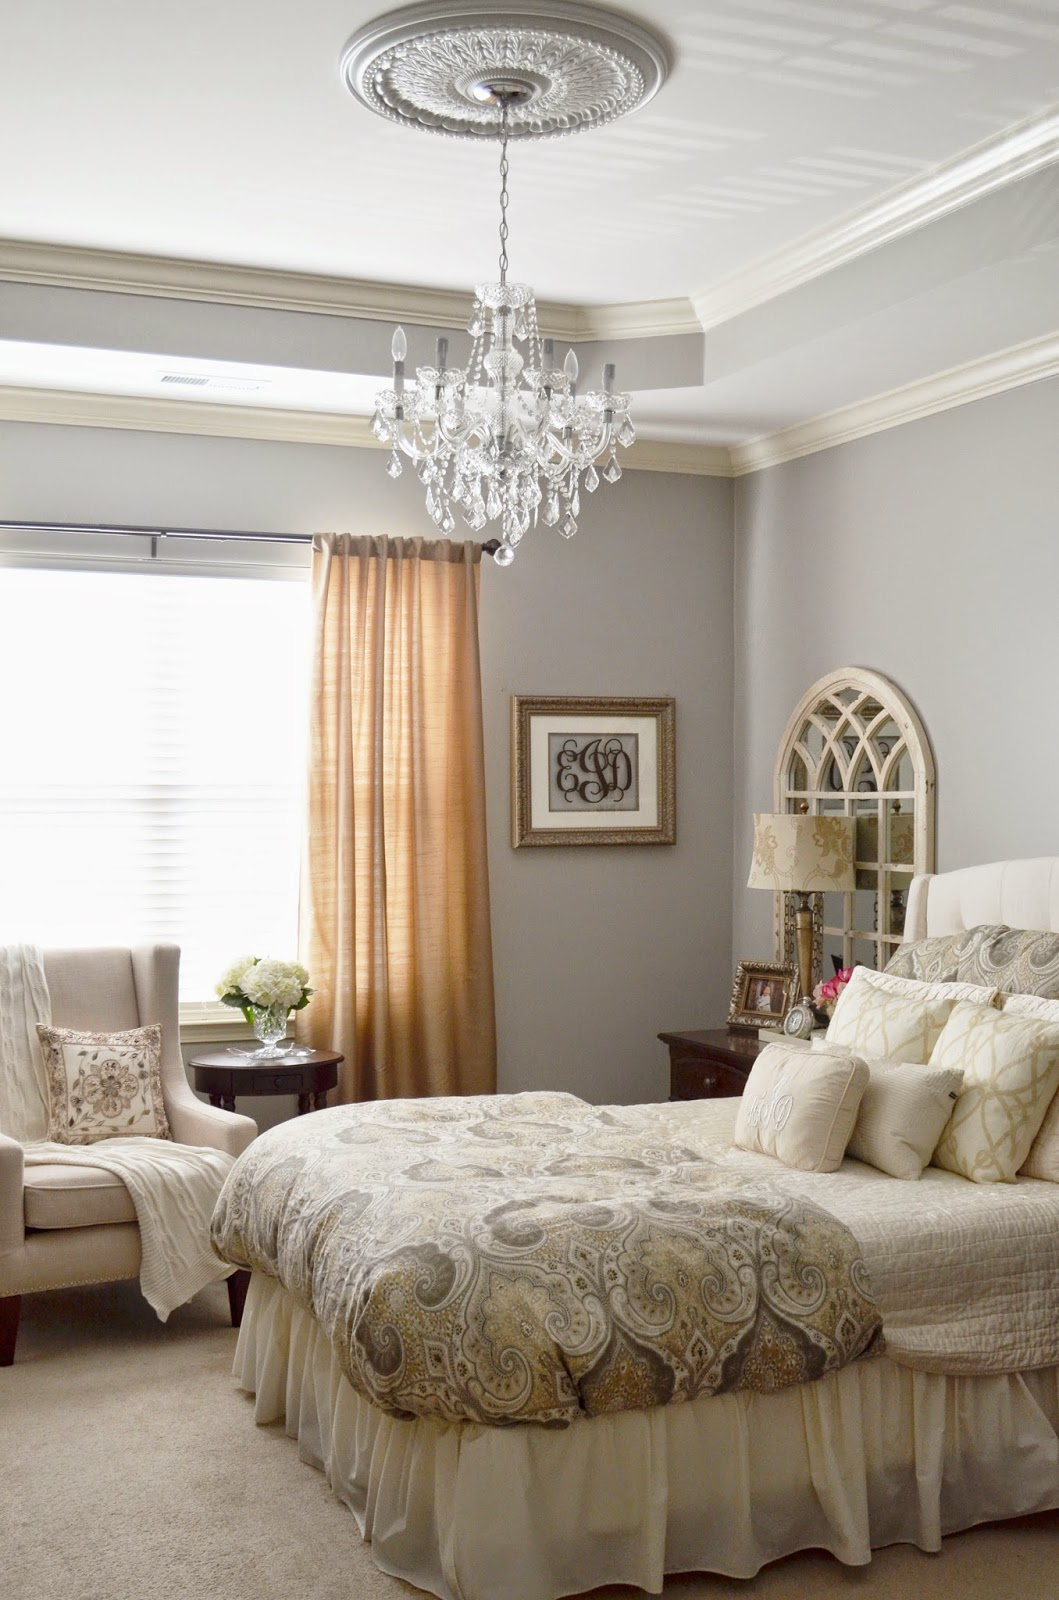 The Cheerful Home: Our Master Bedroom